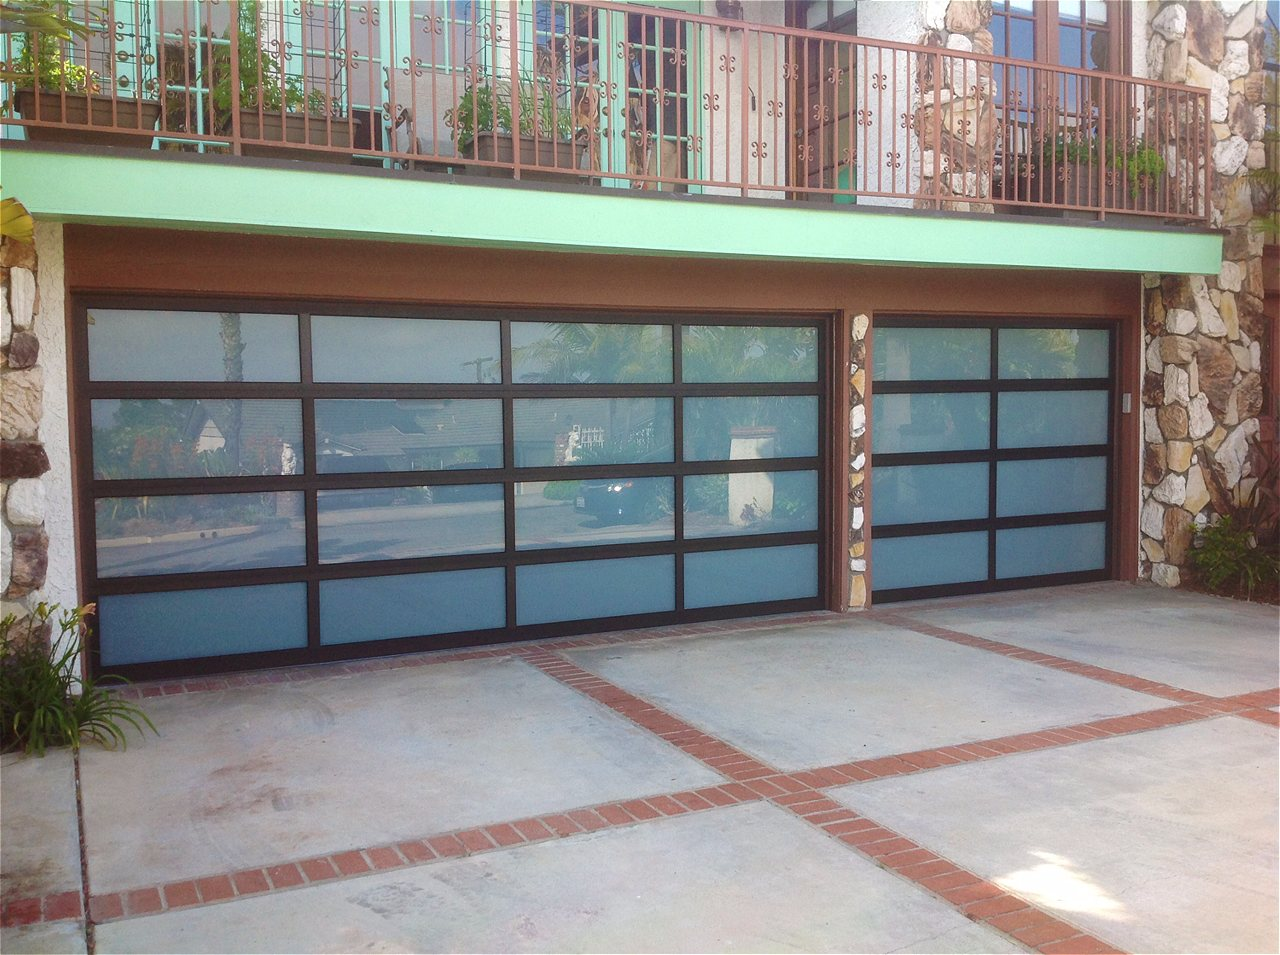 Amarr vista full view aluminum glass garage doors on trac garage these modern sleek garage doors perfectly mirror the clean lines and glass expanses of your homes contemporary design available in a variety of glass rubansaba